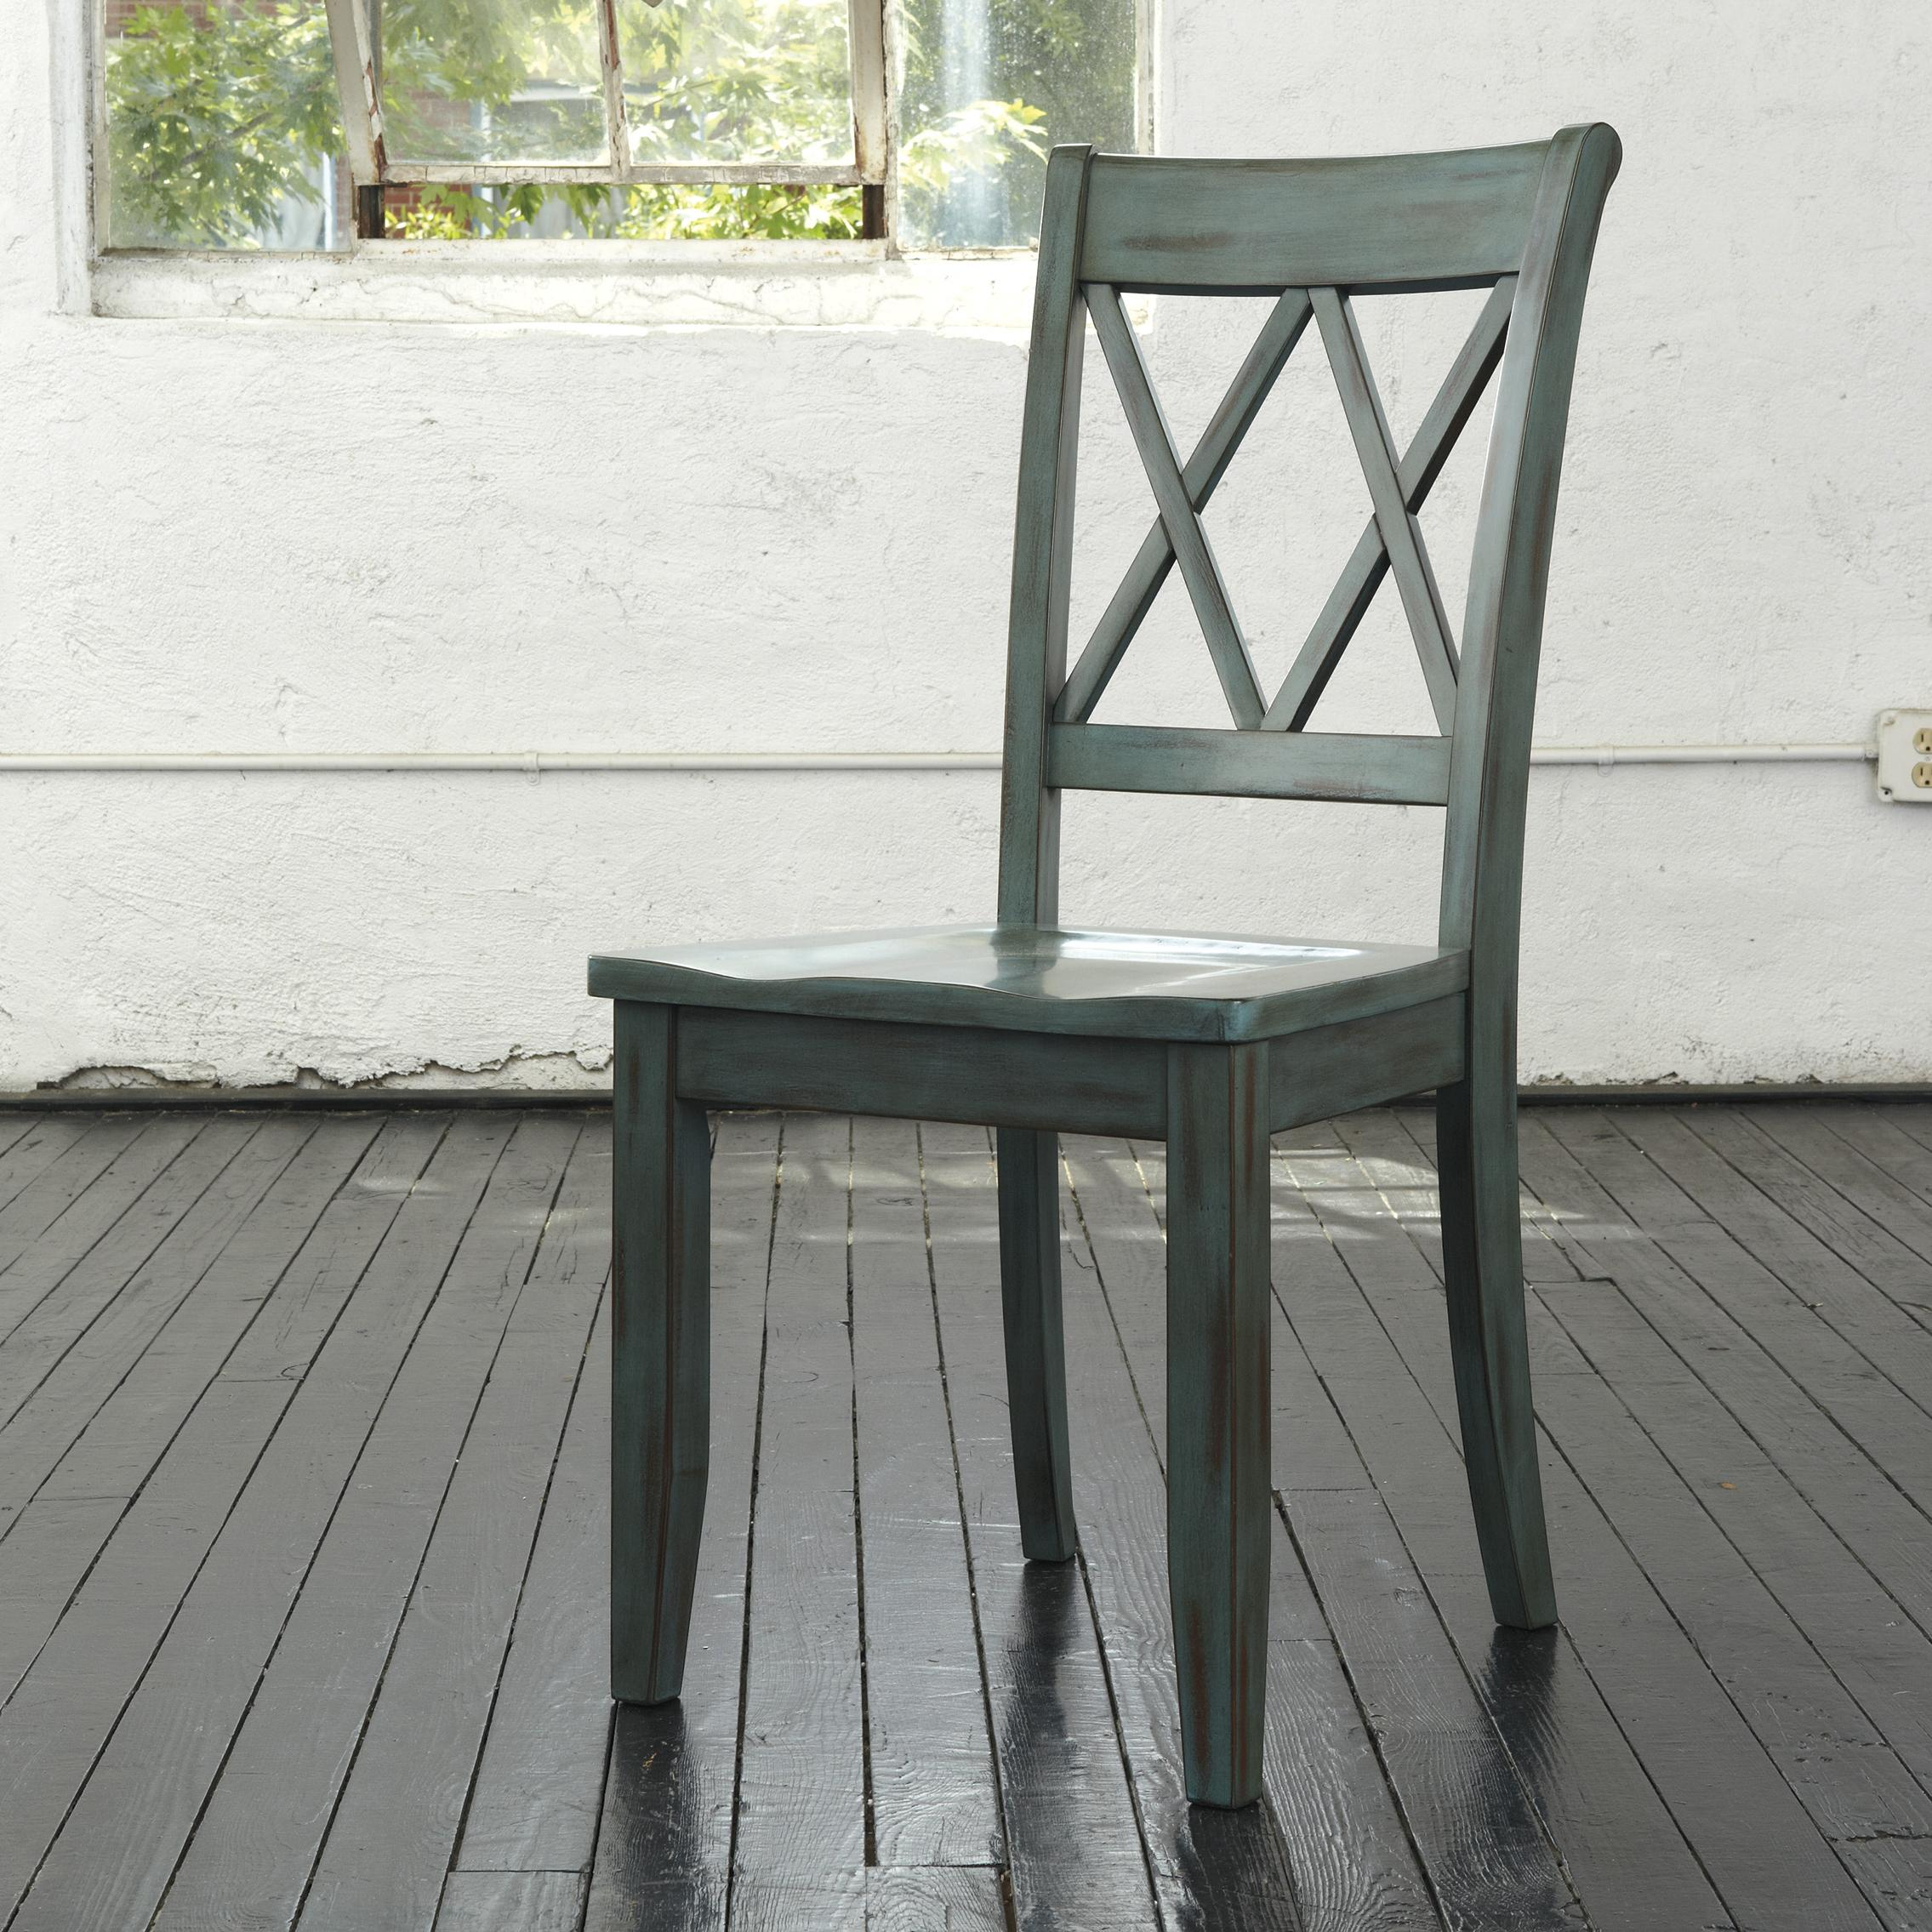 Antique Blue/Green Dining Room Side Chair By Signature